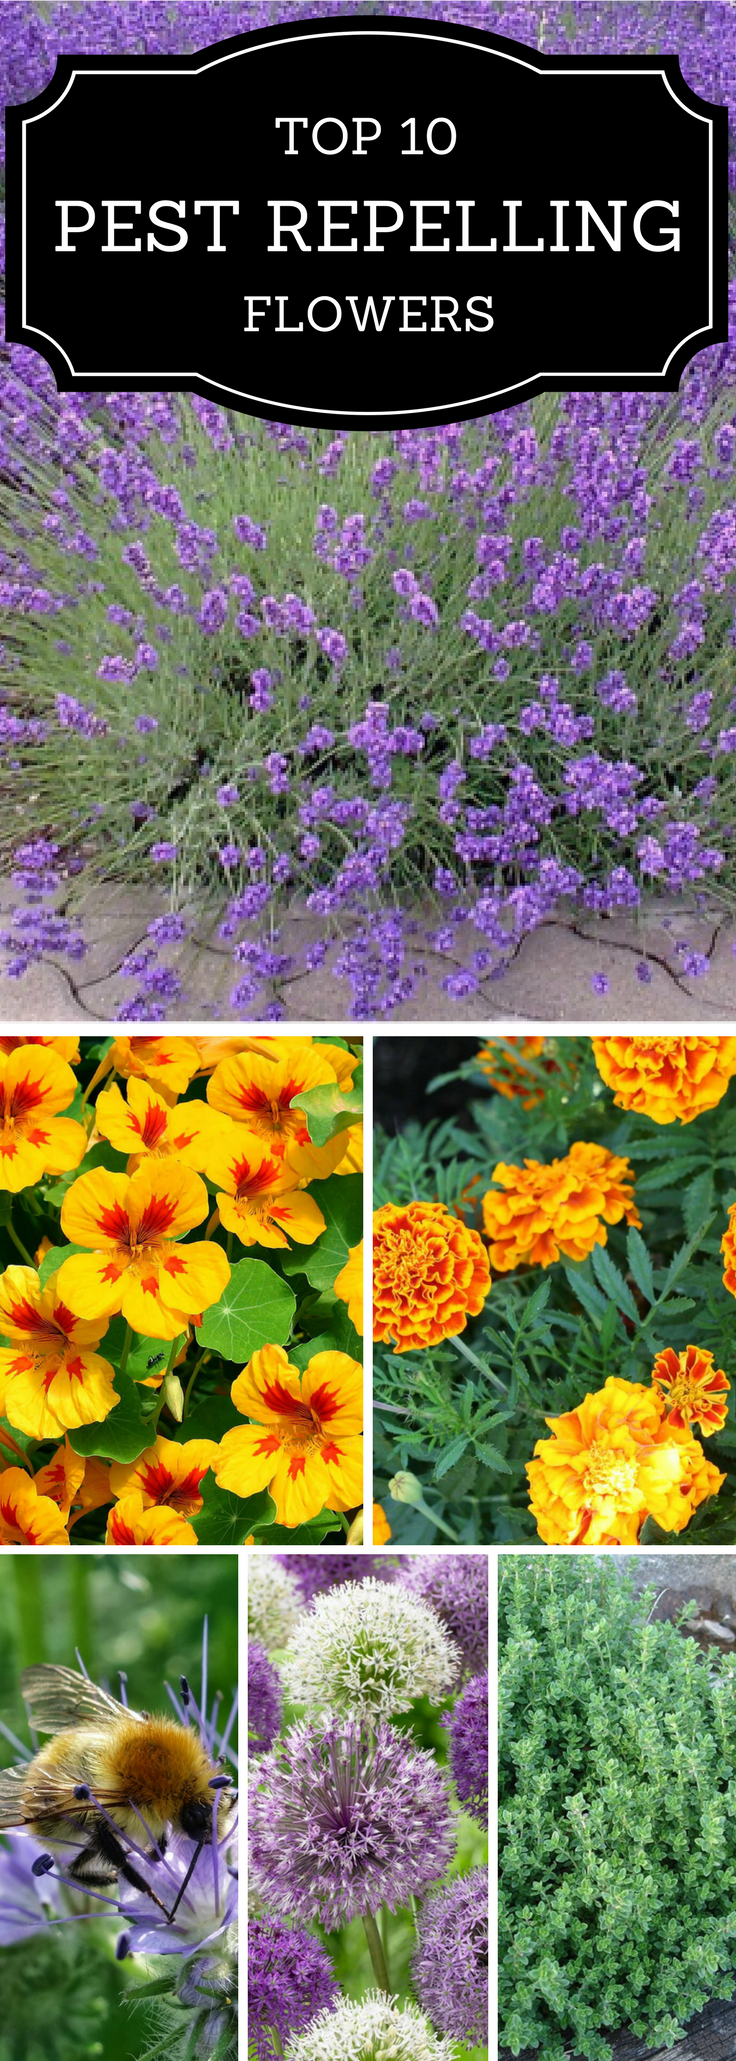 Top bug repelling flowers that keep pests out of your garden